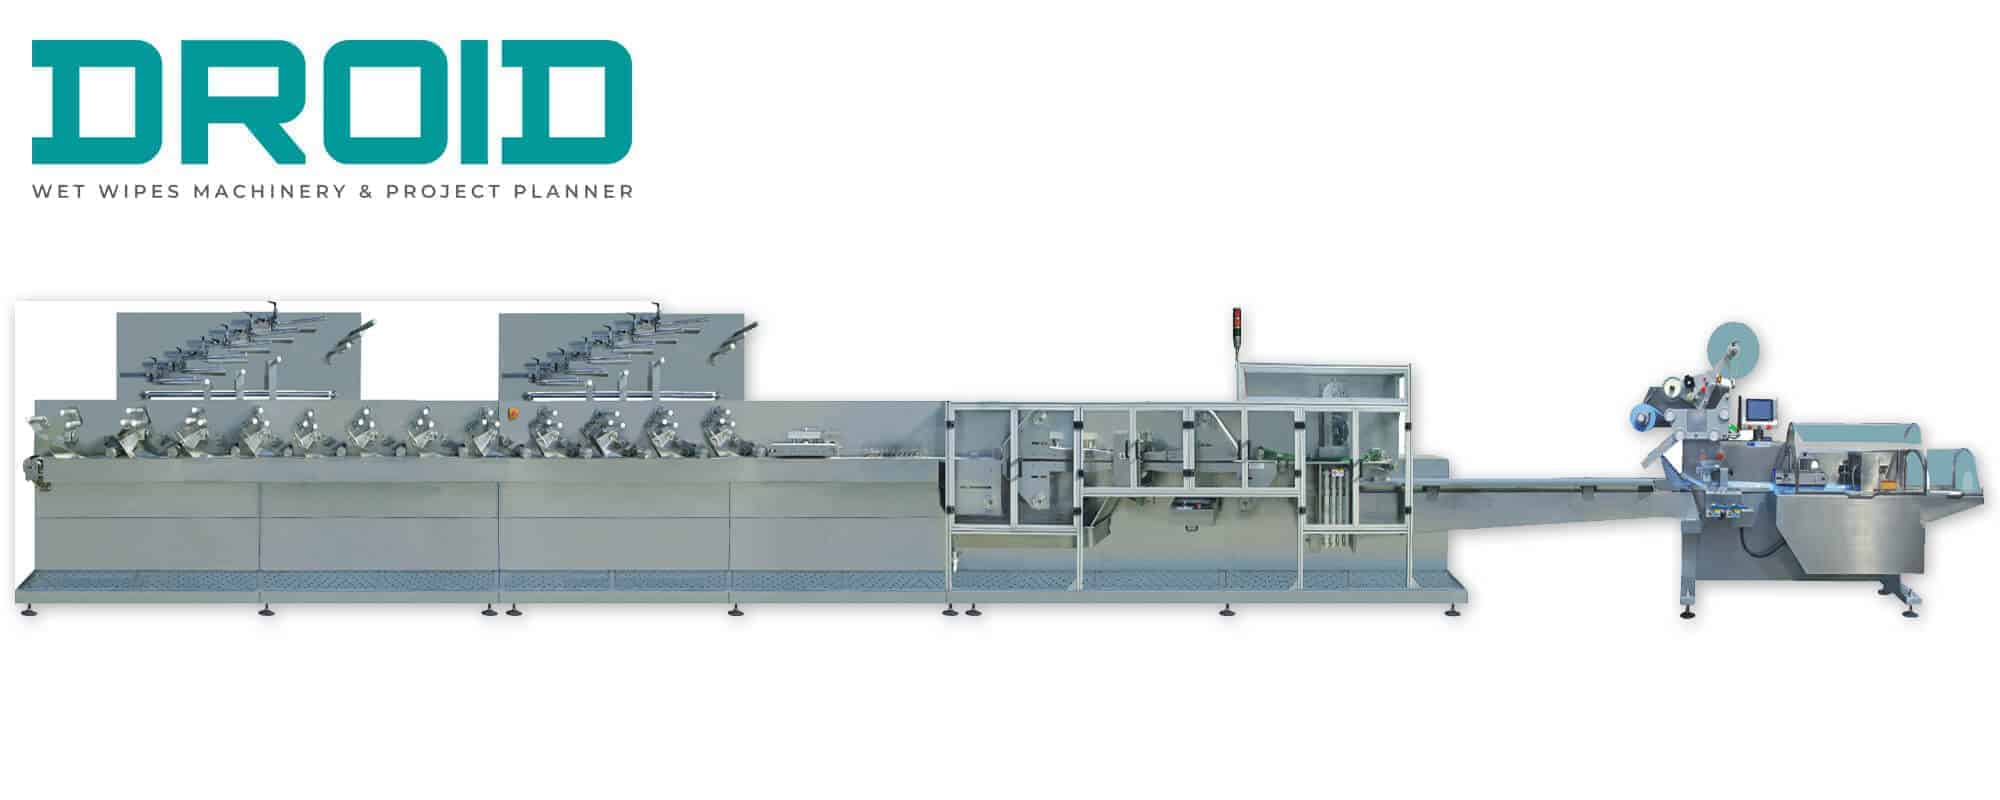 UT BL1012 flow pack wet wipes machine - Are you looking for Disinfectant Wet Wipes Machine?